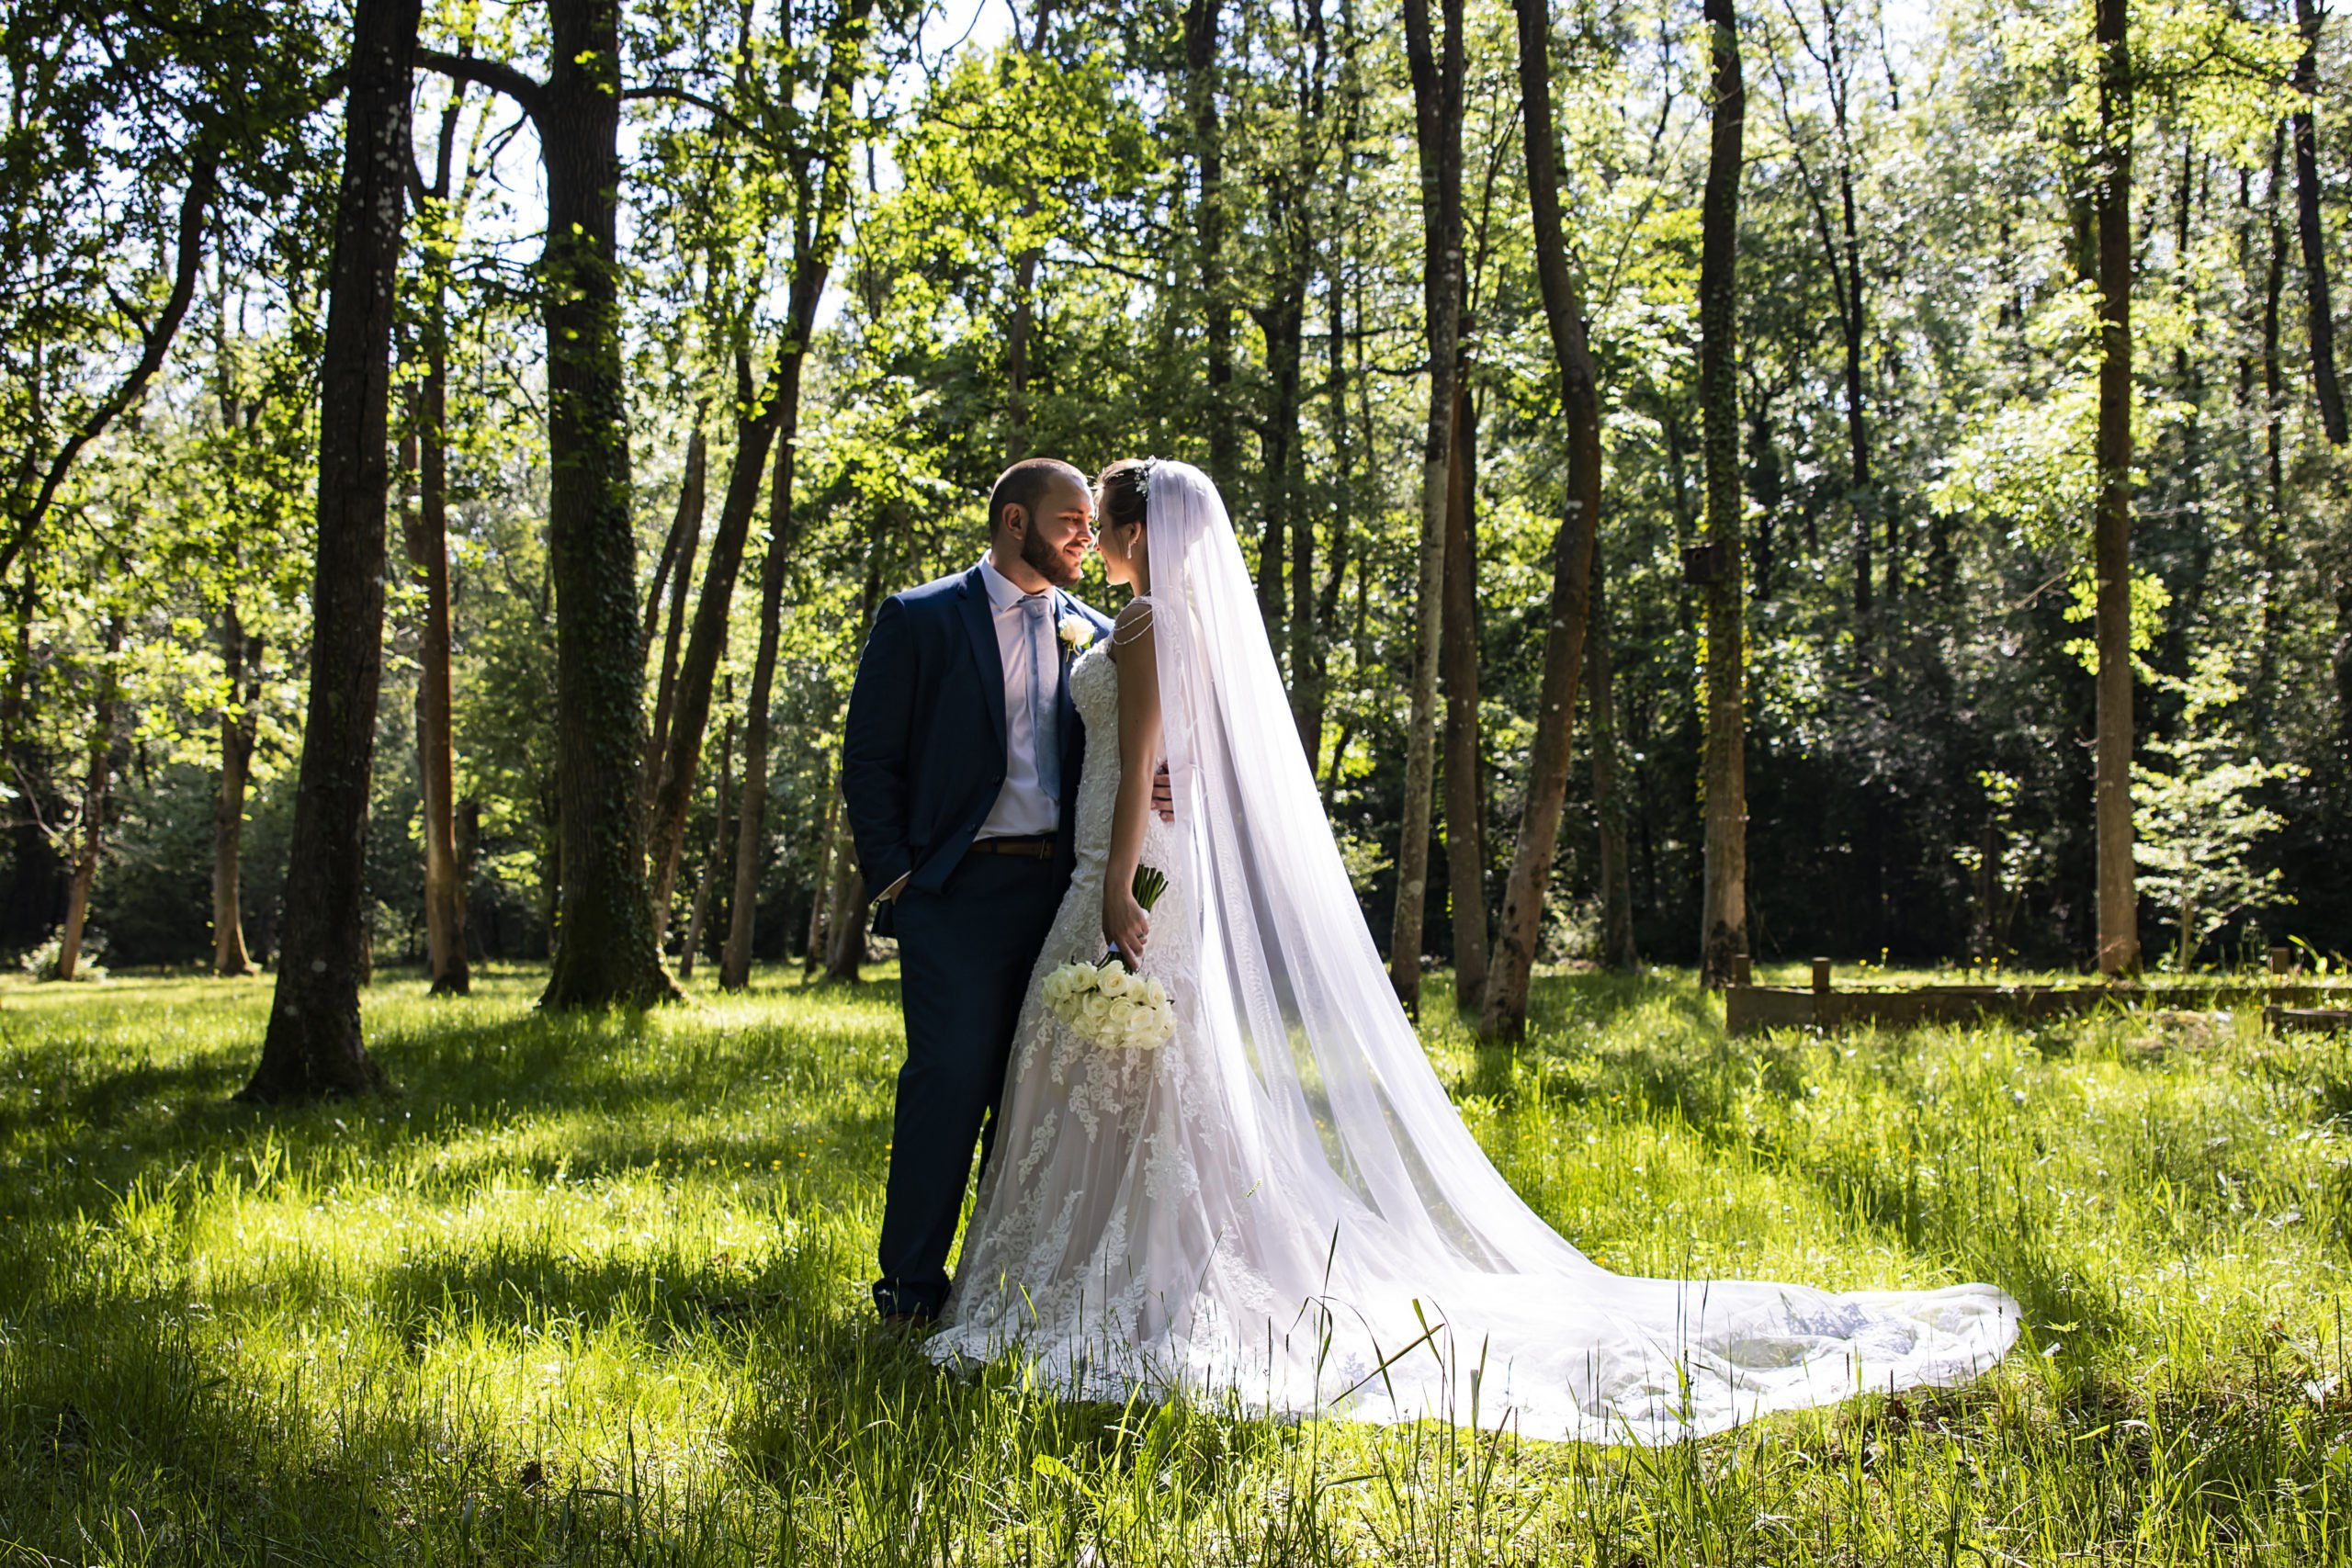 couple standing together in a forest clearing on a sunny day